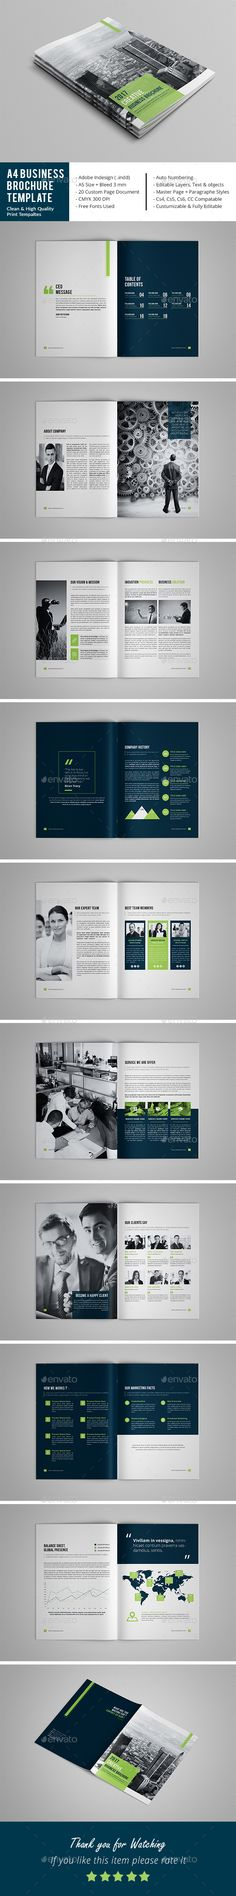 A4 Business Brochure Template - Corporate Brochures Download here : https://graphicriver.net/item/a4-business-brochure-template/19467049?s_rank=42&ref=Al-fatih